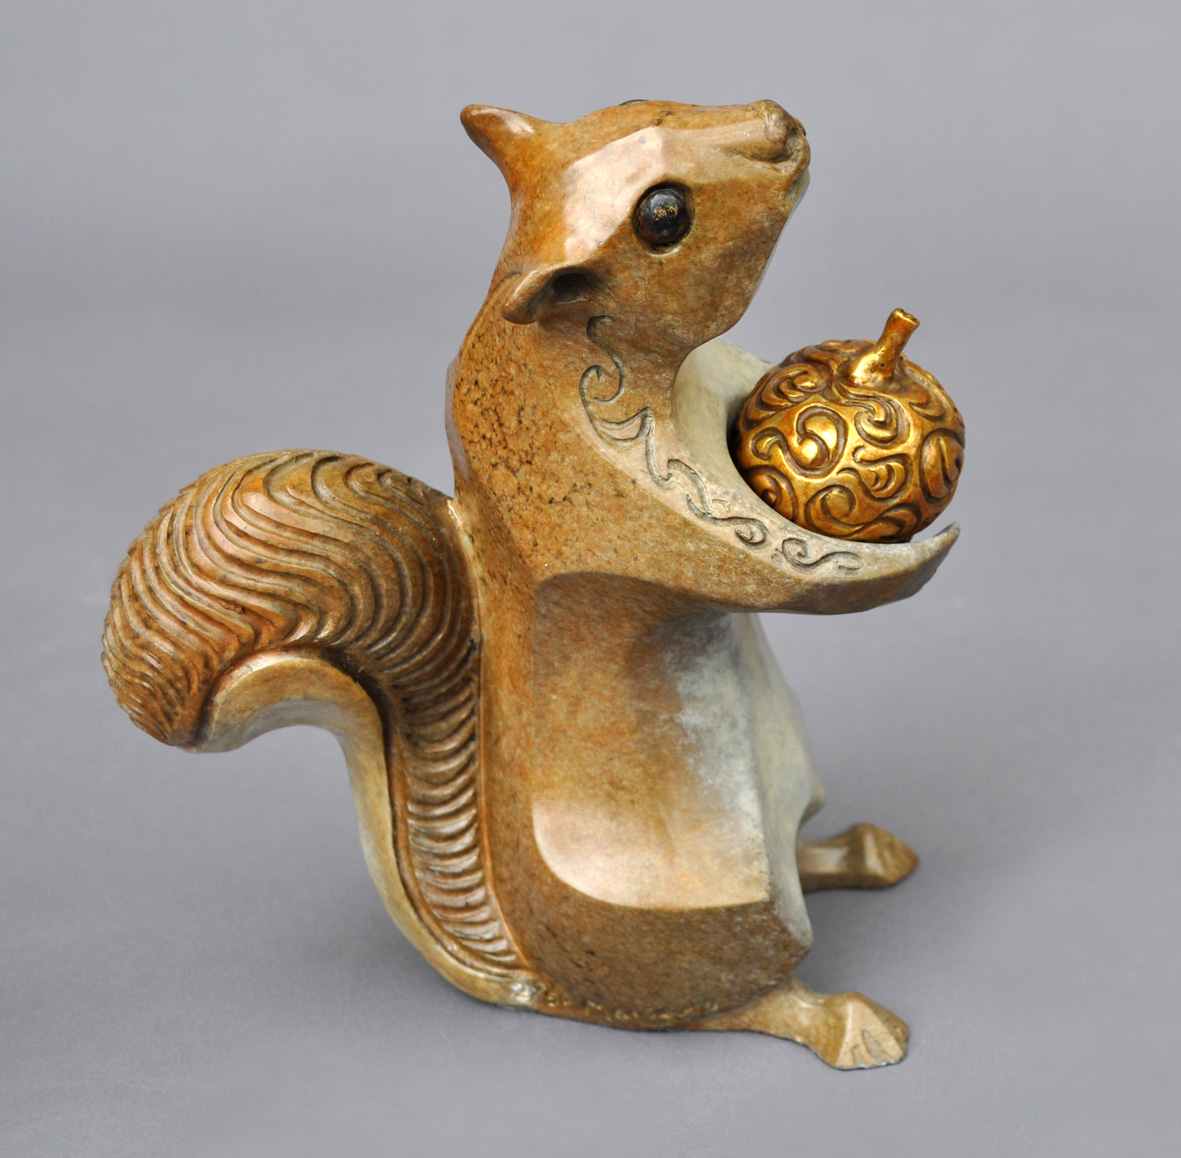 bronze squirrel sculpture john maisano 9